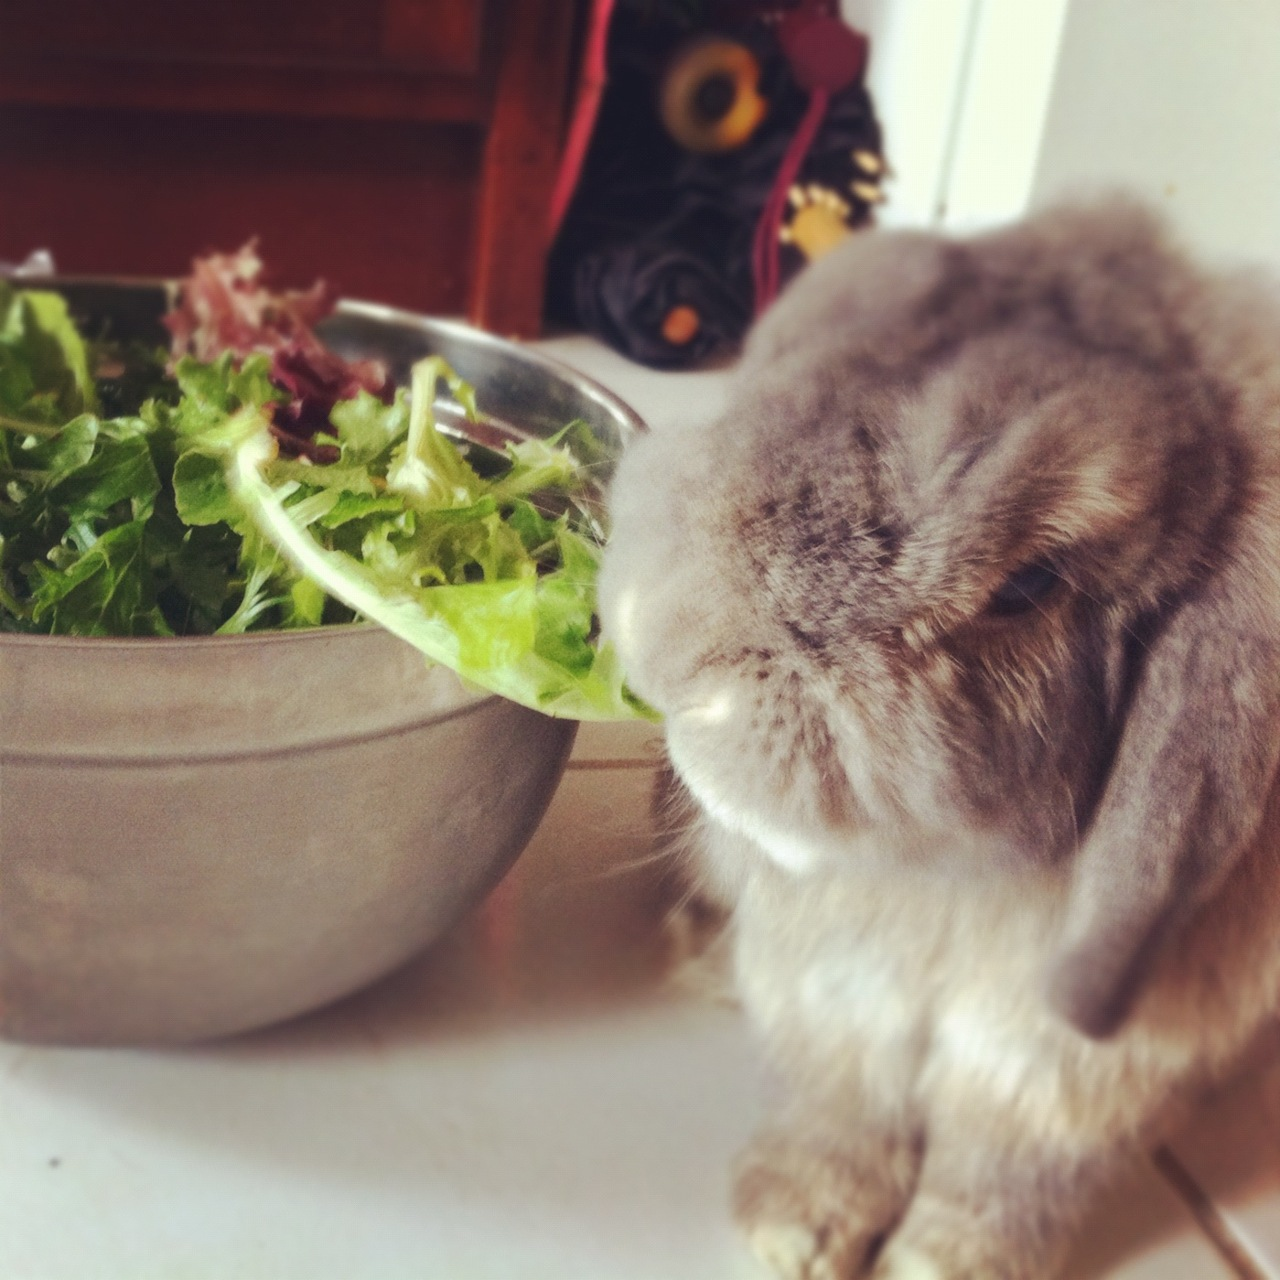 You Made a Salad? Don't Mind If I Do!